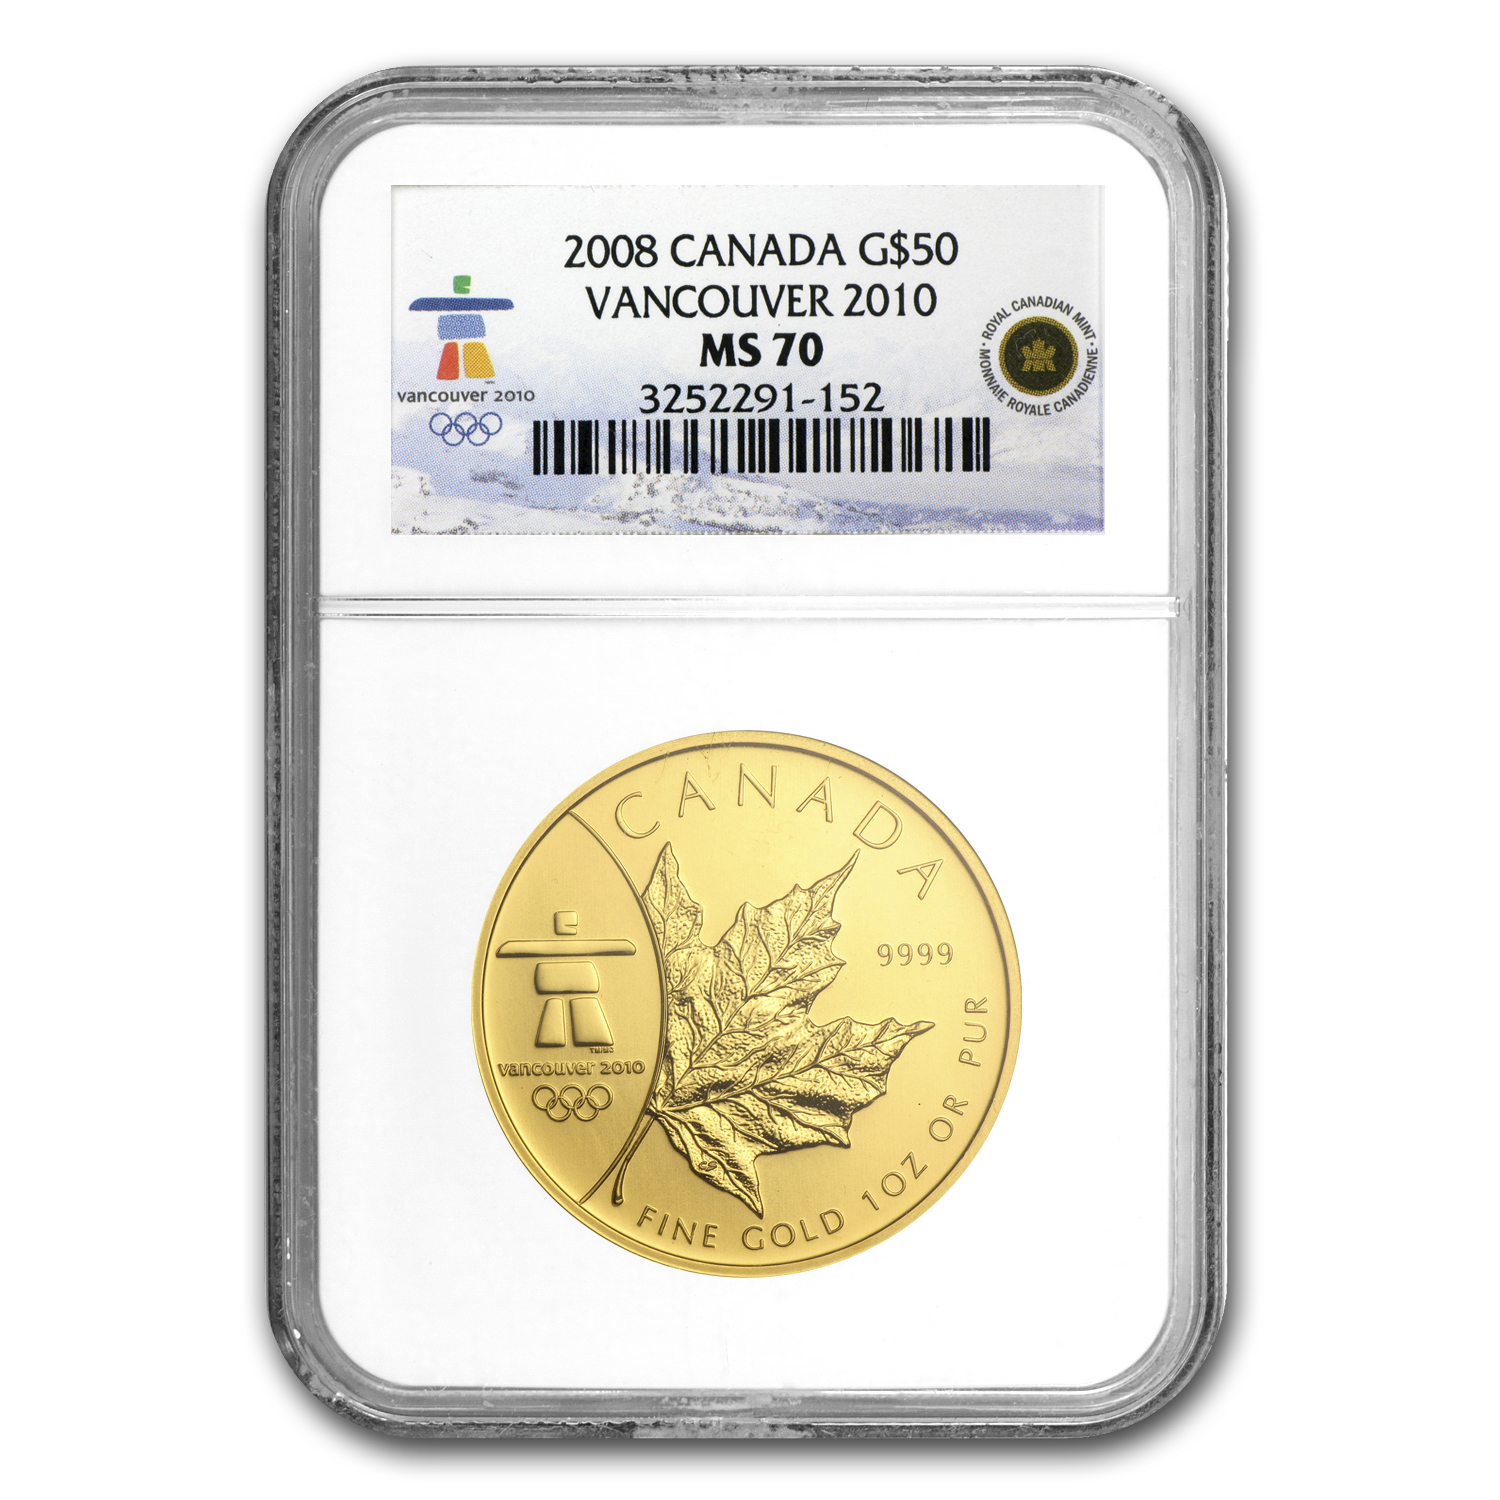 2008 1 oz Gold Canadian Maple Leaf (Vancouver) MS-70 NGC